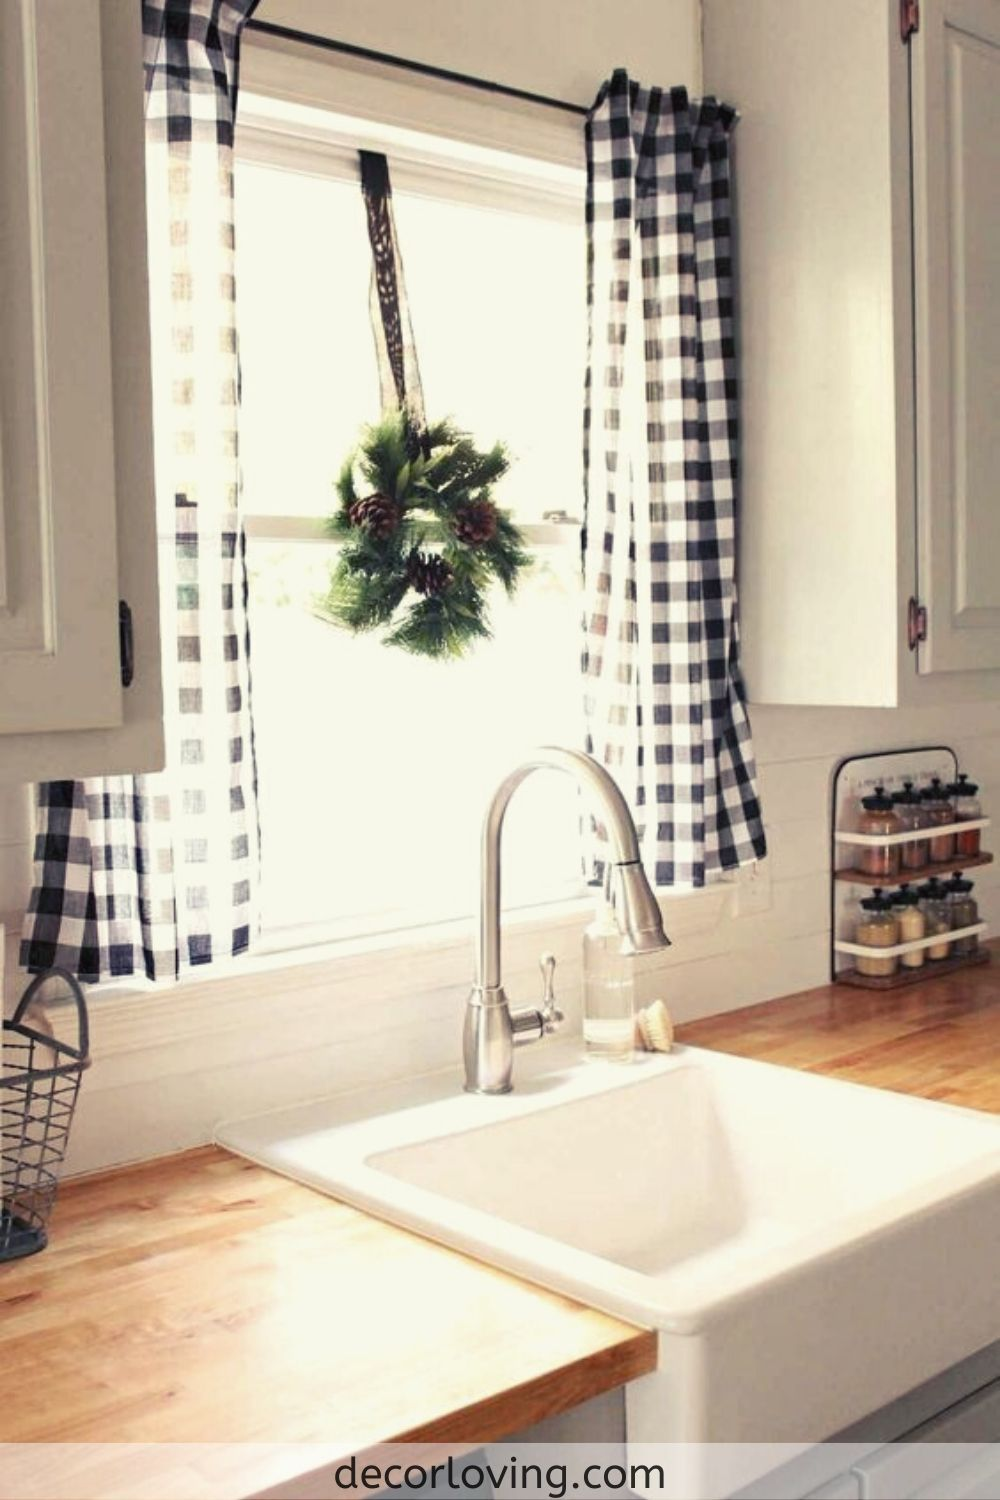 21 Favourite Kitchen Curtains Ideas For Farmhouse Kitchen In 2020 Farmhouse Kitchen Curtains Farmhouse Style Kitchen Farmhouse Kitchen Design